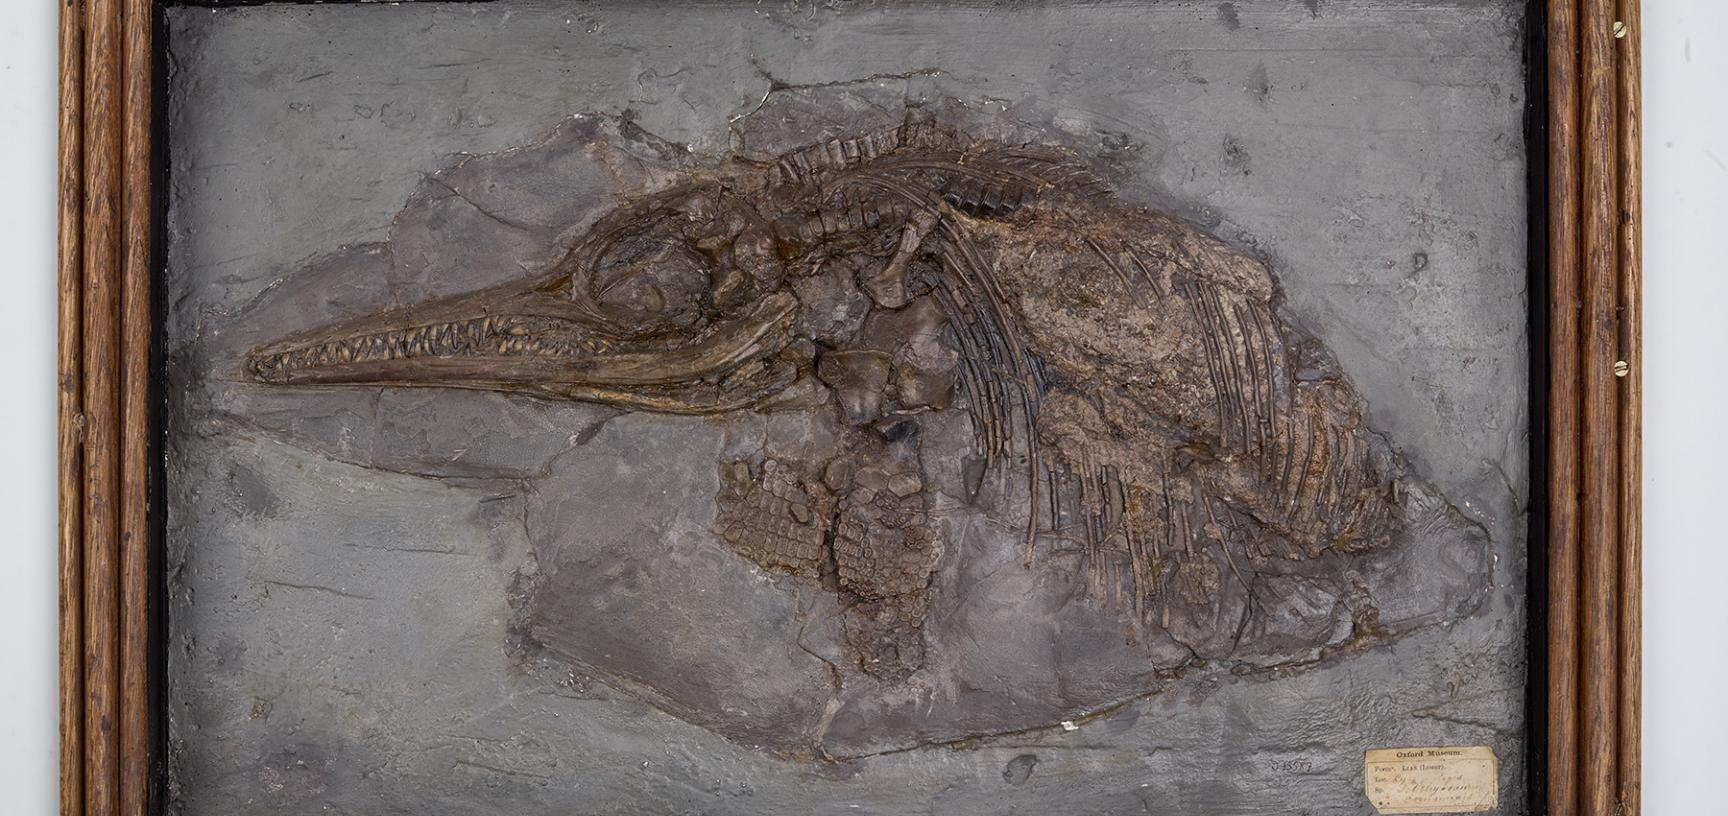 Partial skeleton of a young ichthyosaur with stomach contents from the Lower Jurassic of Lyme Regis. Collected by Mary Anning at some time before 1836.